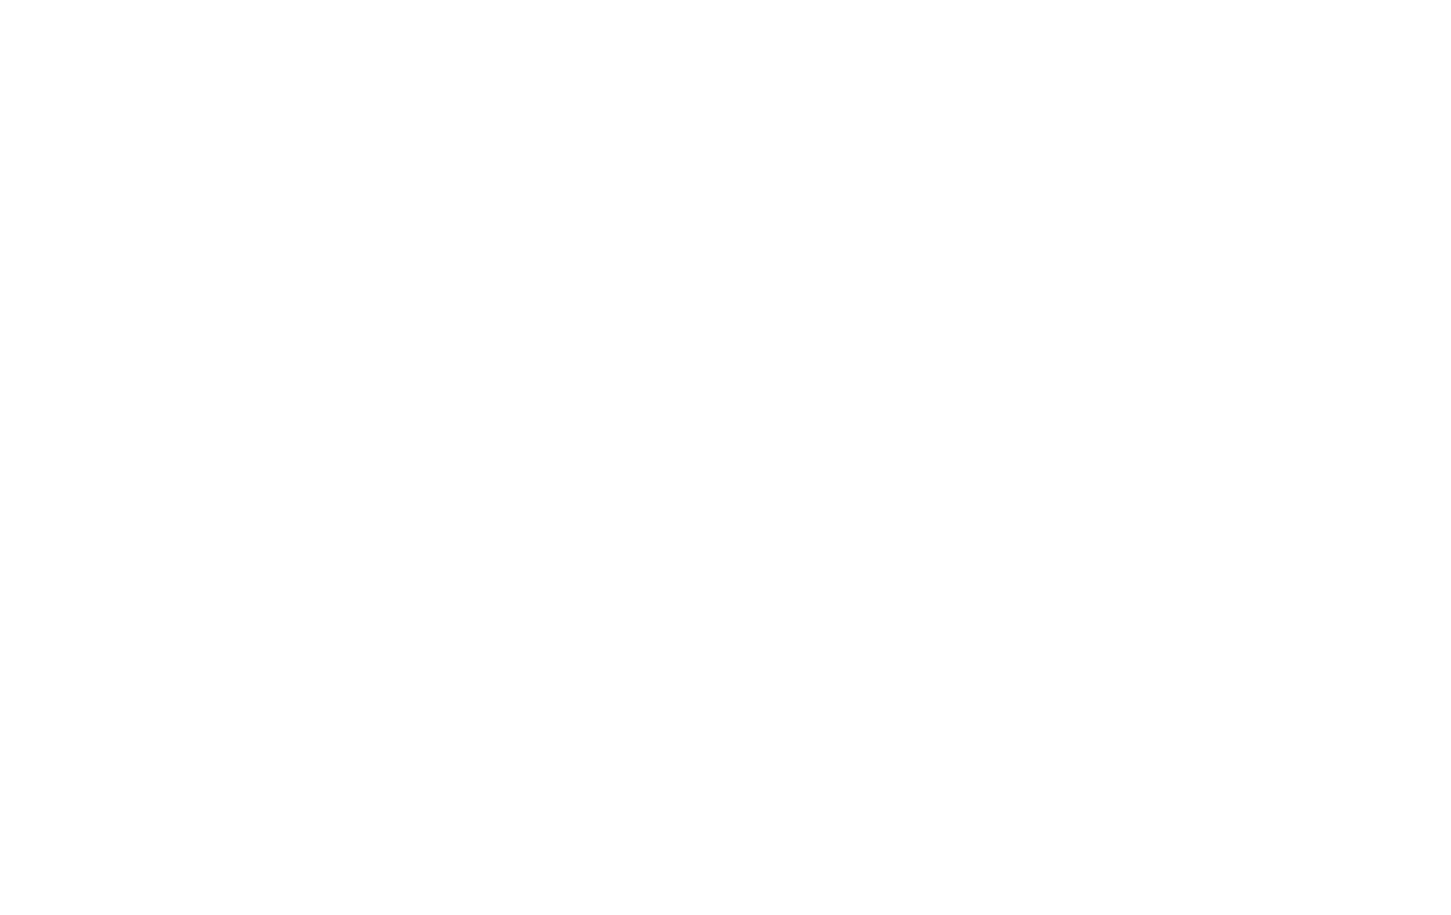 Eagle Grove Advisors LLC